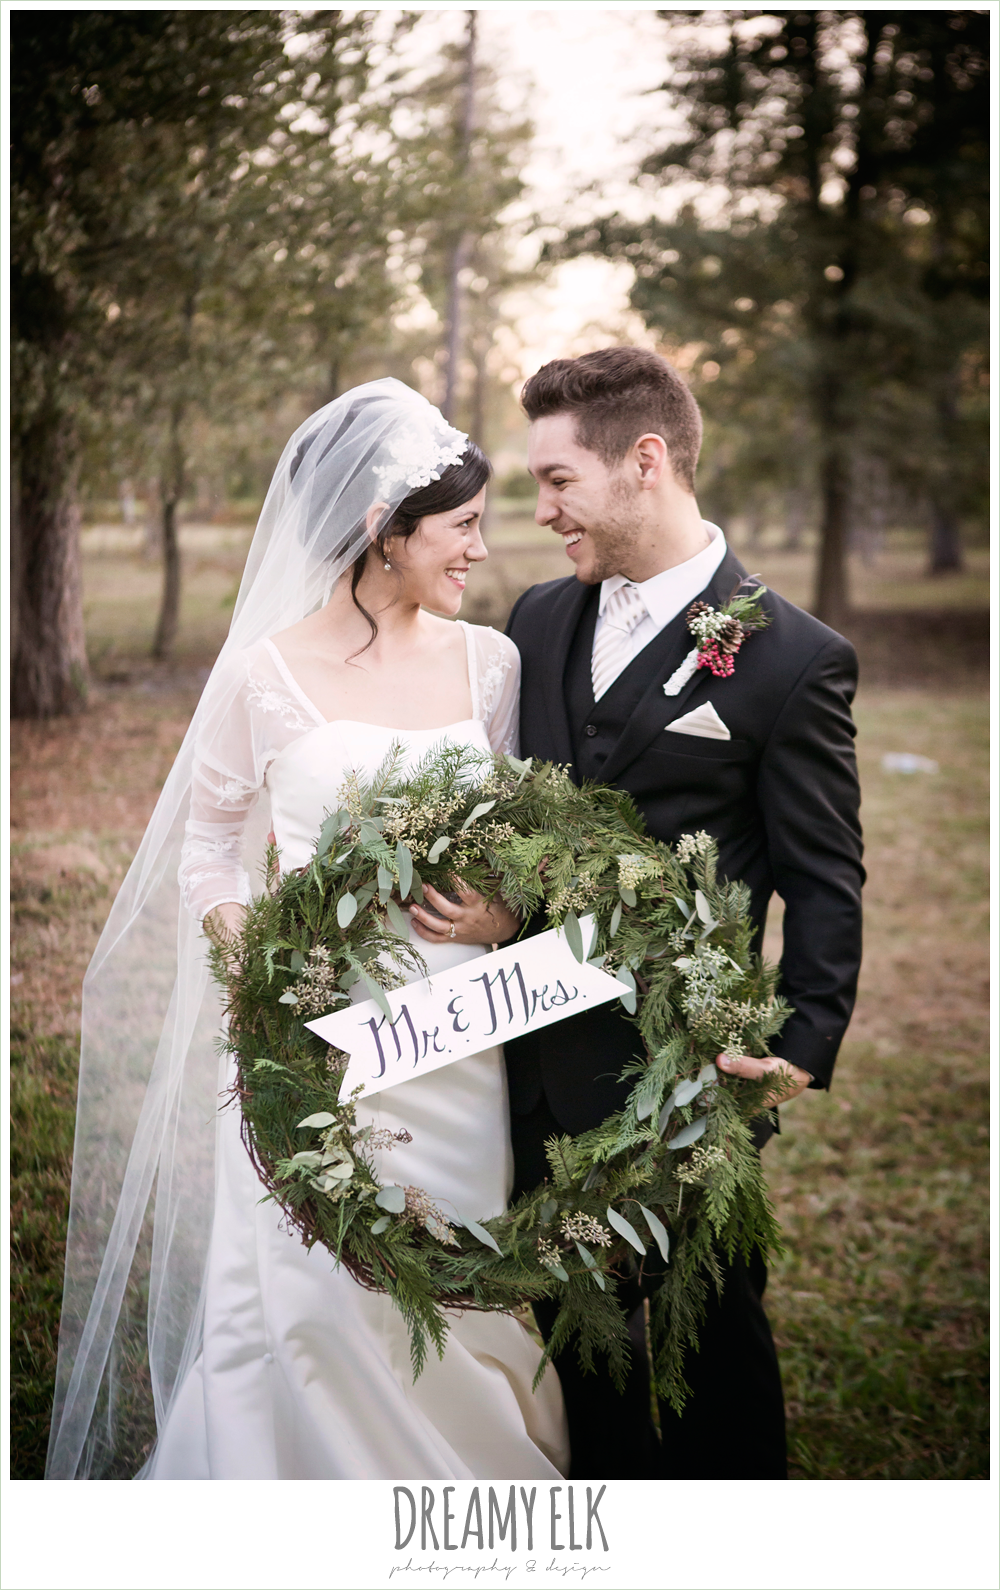 mr and mrs wreath, bride and groom, long sleeve wedding dress, winter december church wedding photo {dreamy elk photography and design}